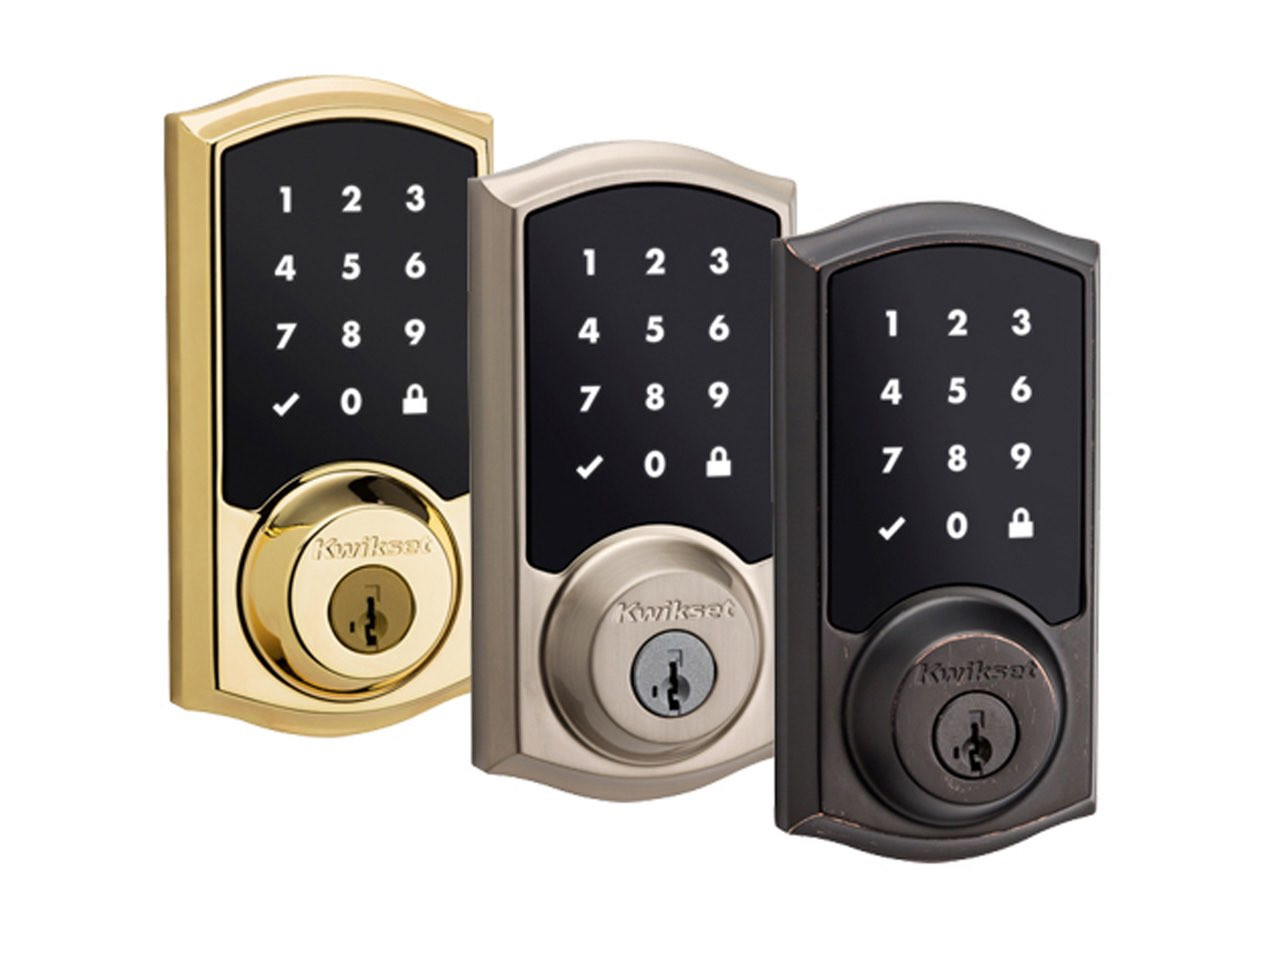 Kwikset 916 Touchscreen Electronic Deadbolt